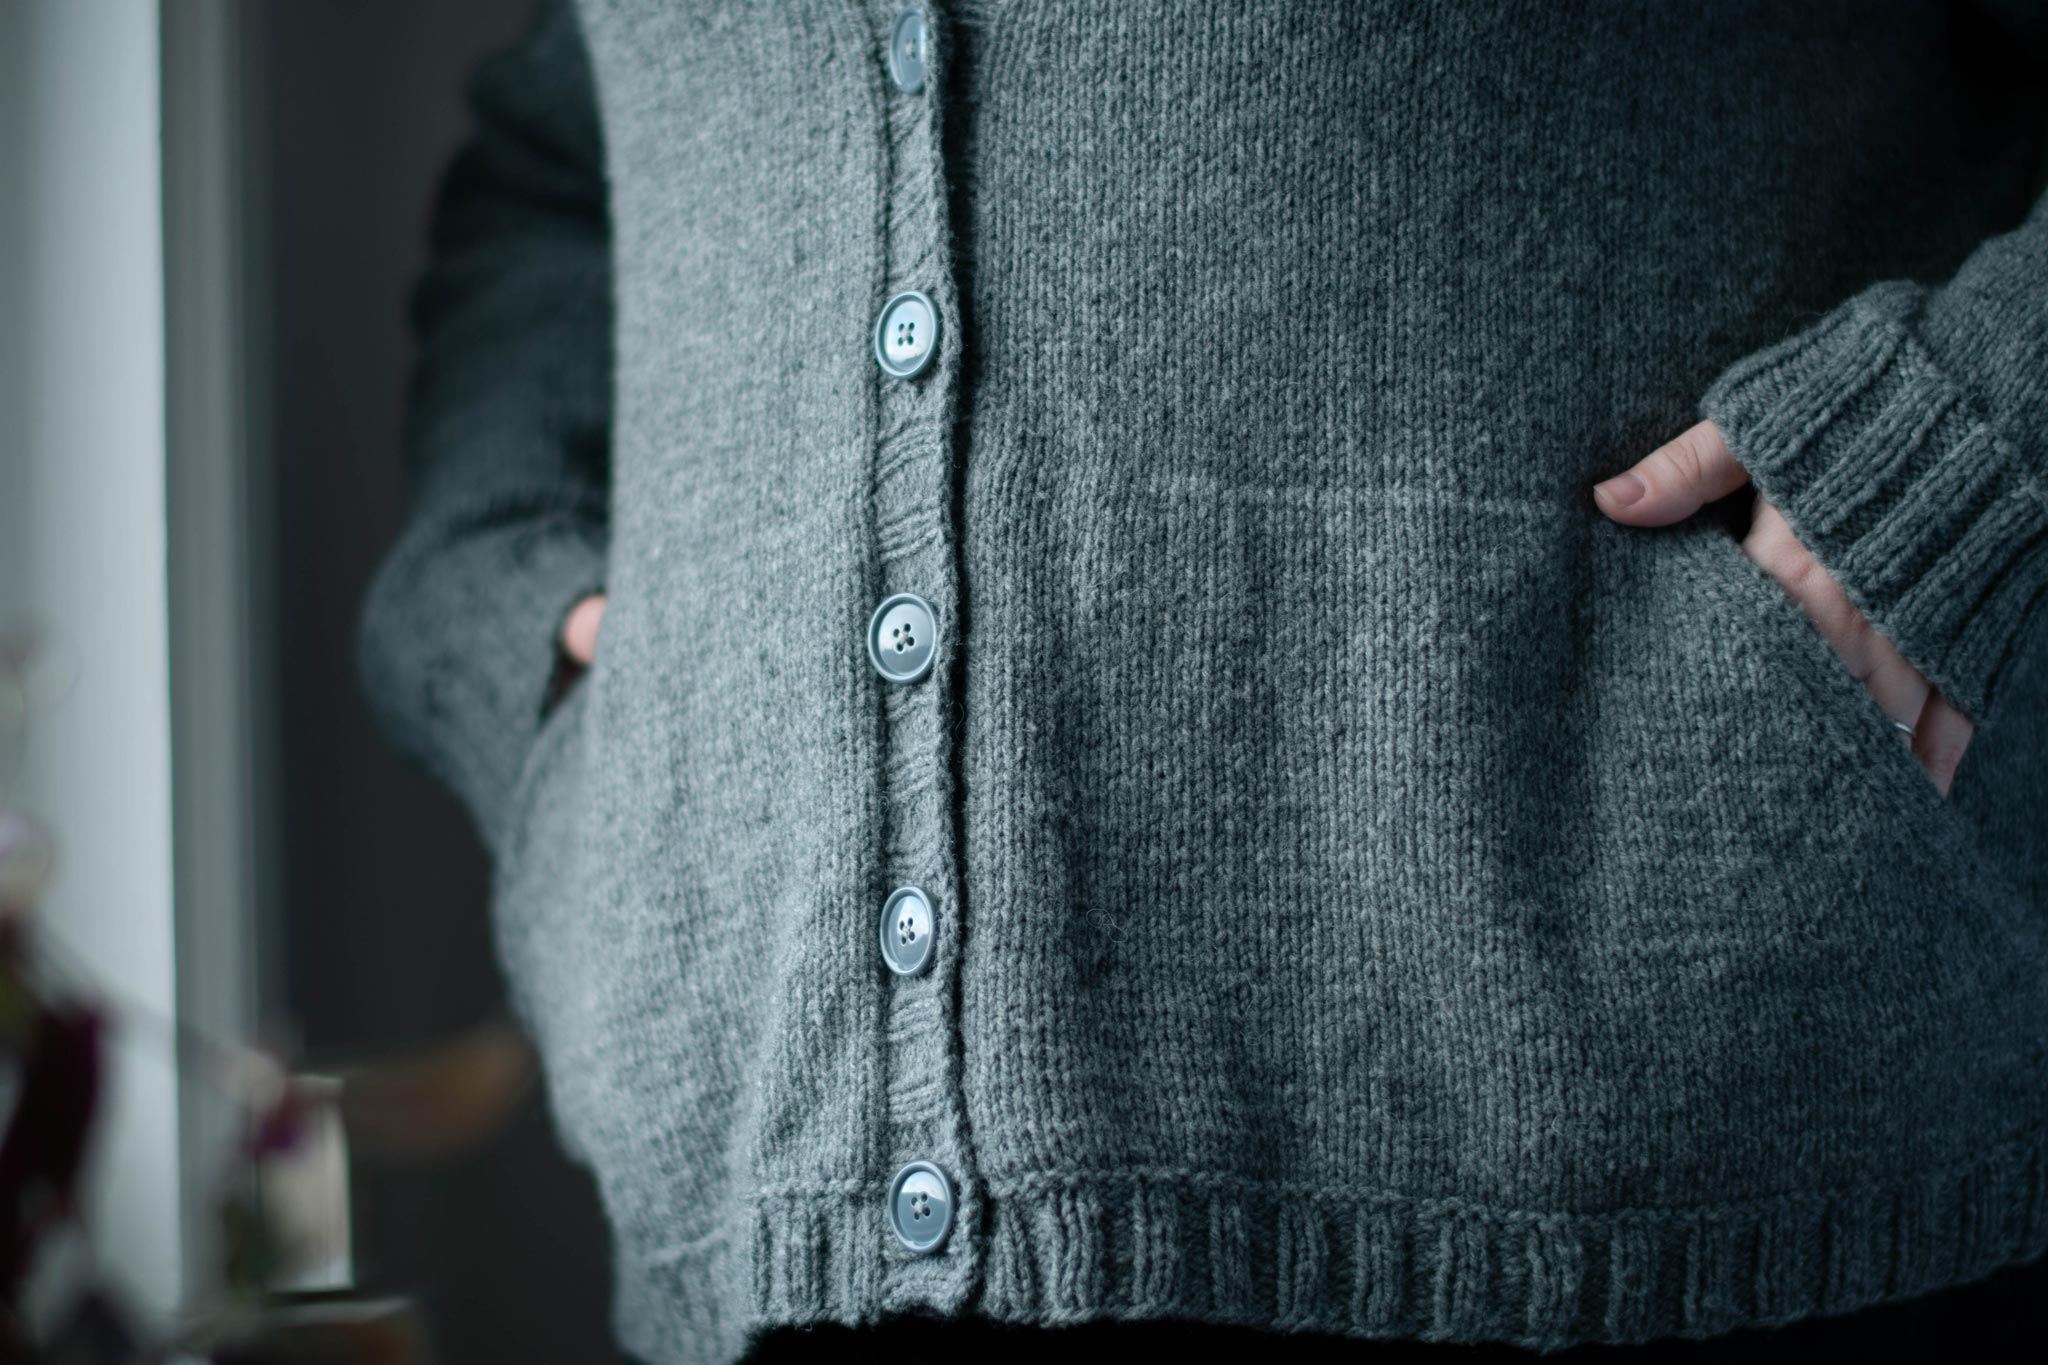 Image of the buttoned front of a grey cardigan, angled toward the light from a window. White-skinned hands are tucked into the angled pockeds.